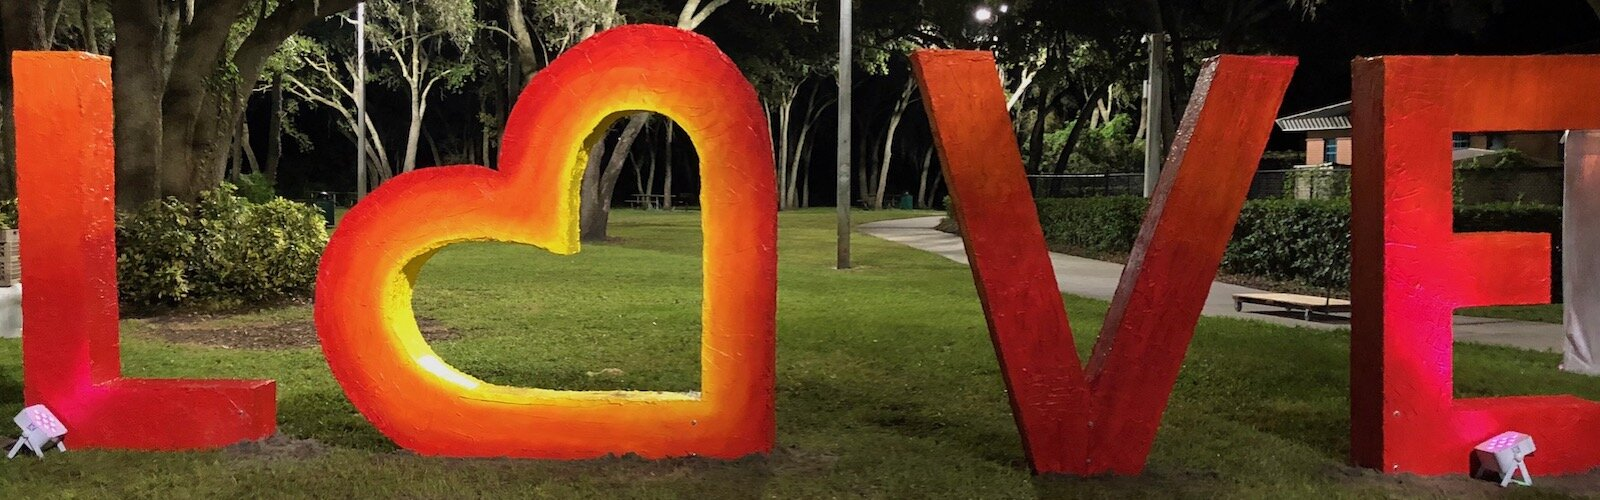 Love sculpture for Harvest Hope Park by Lead Artist Junior Polo was funded by a Treasure Tampa grant by the Gobioff Foundation.